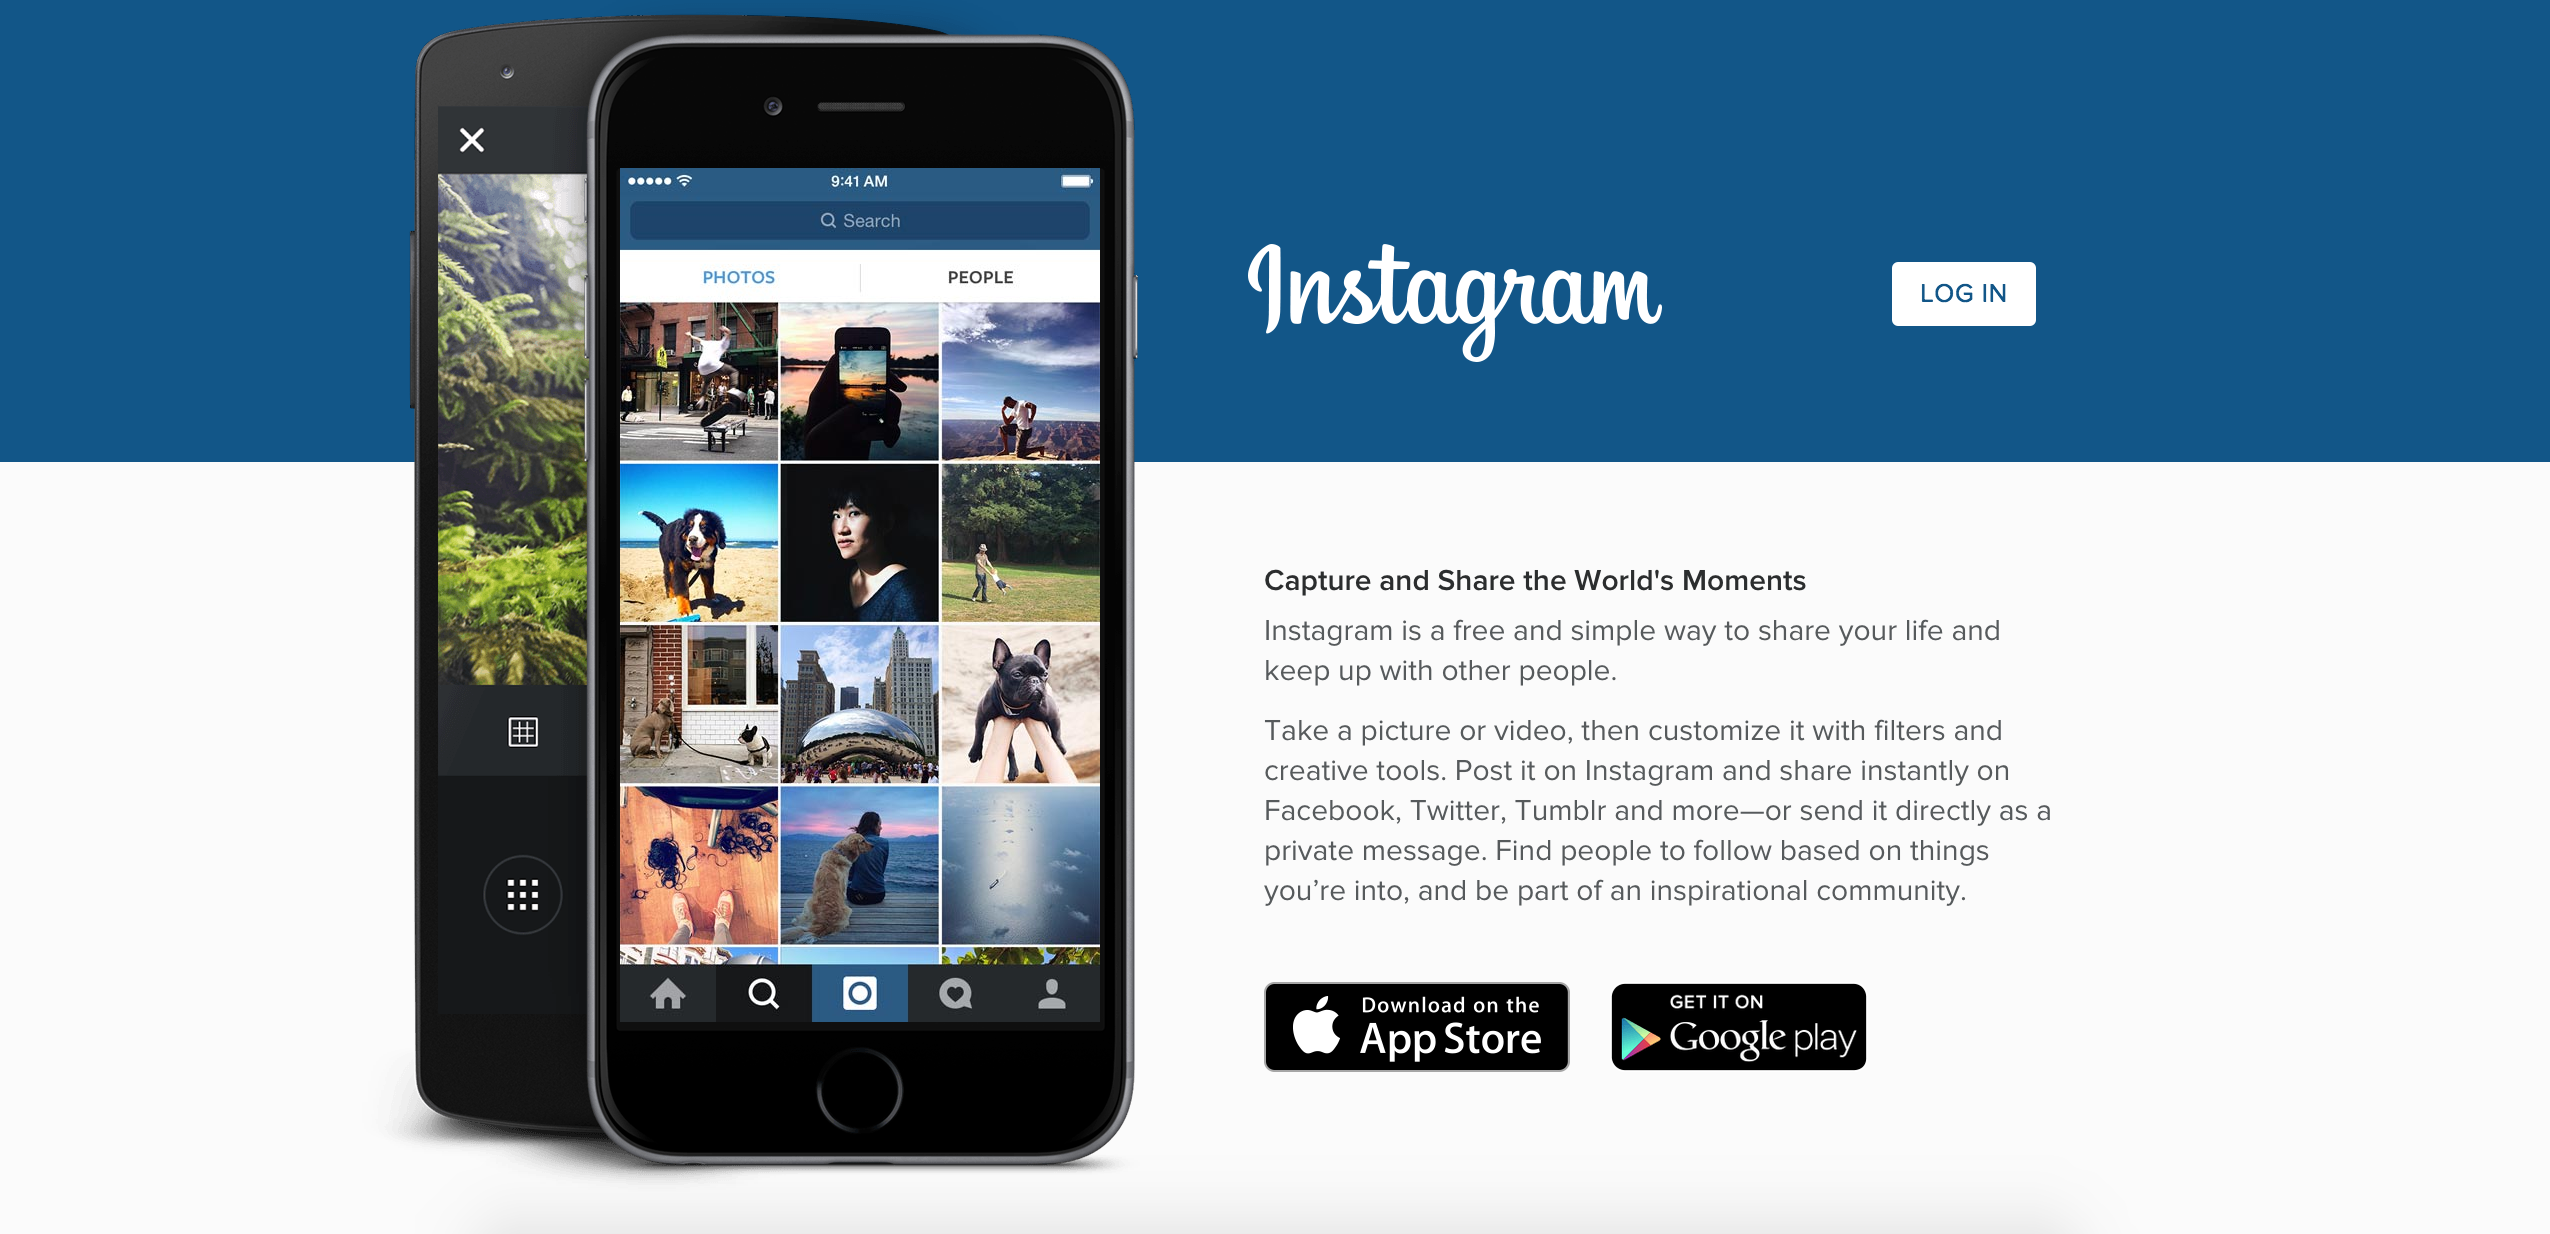 Instagram Log In Page